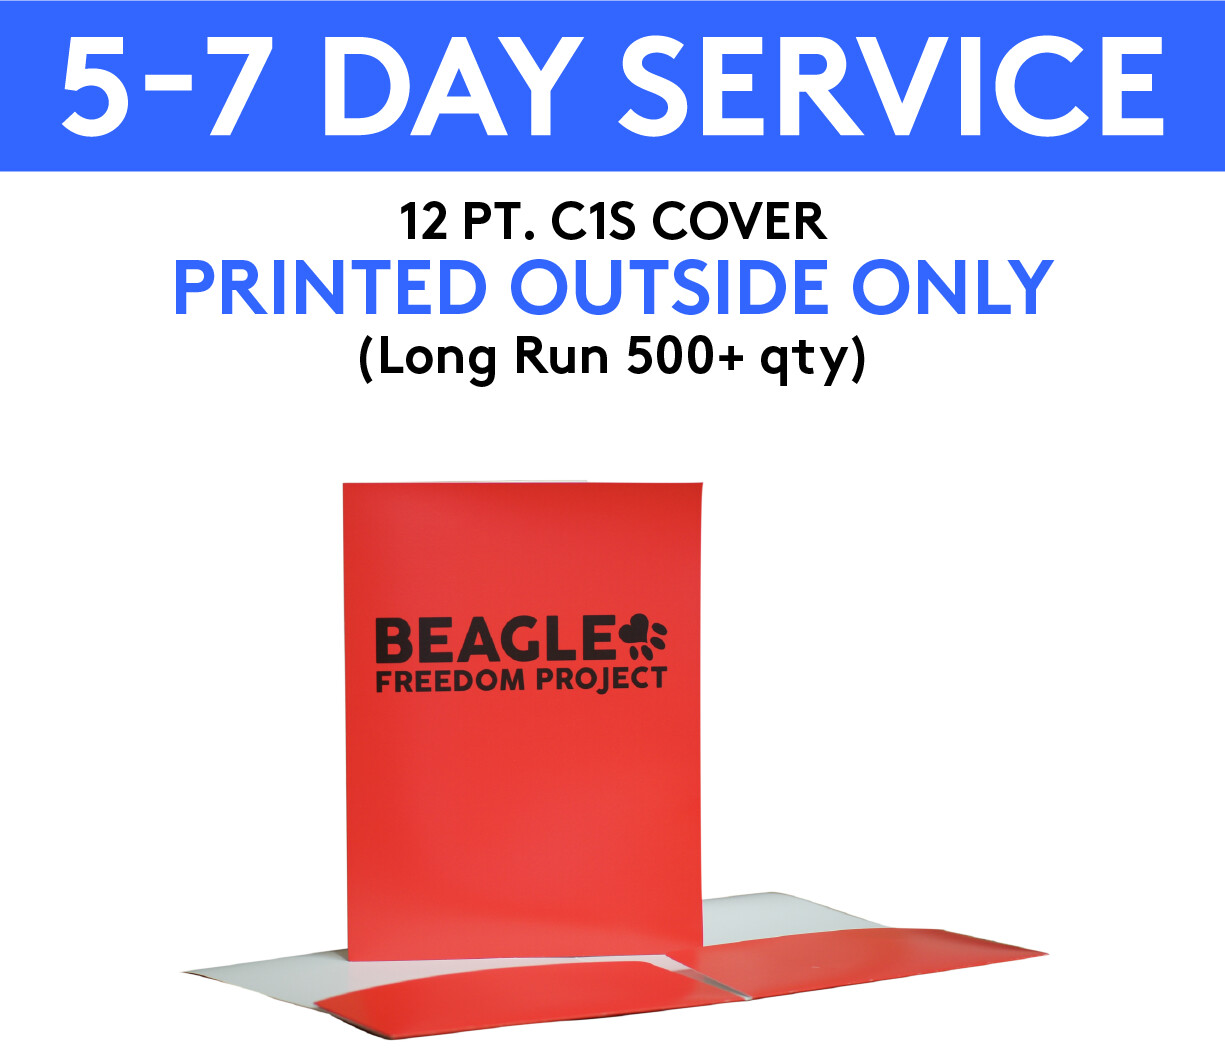 12 pt. C1S Cover Presentation Folders Printed 4/0 (Outside Only)   5-7 Day Service    (Long Run 500+ qty )